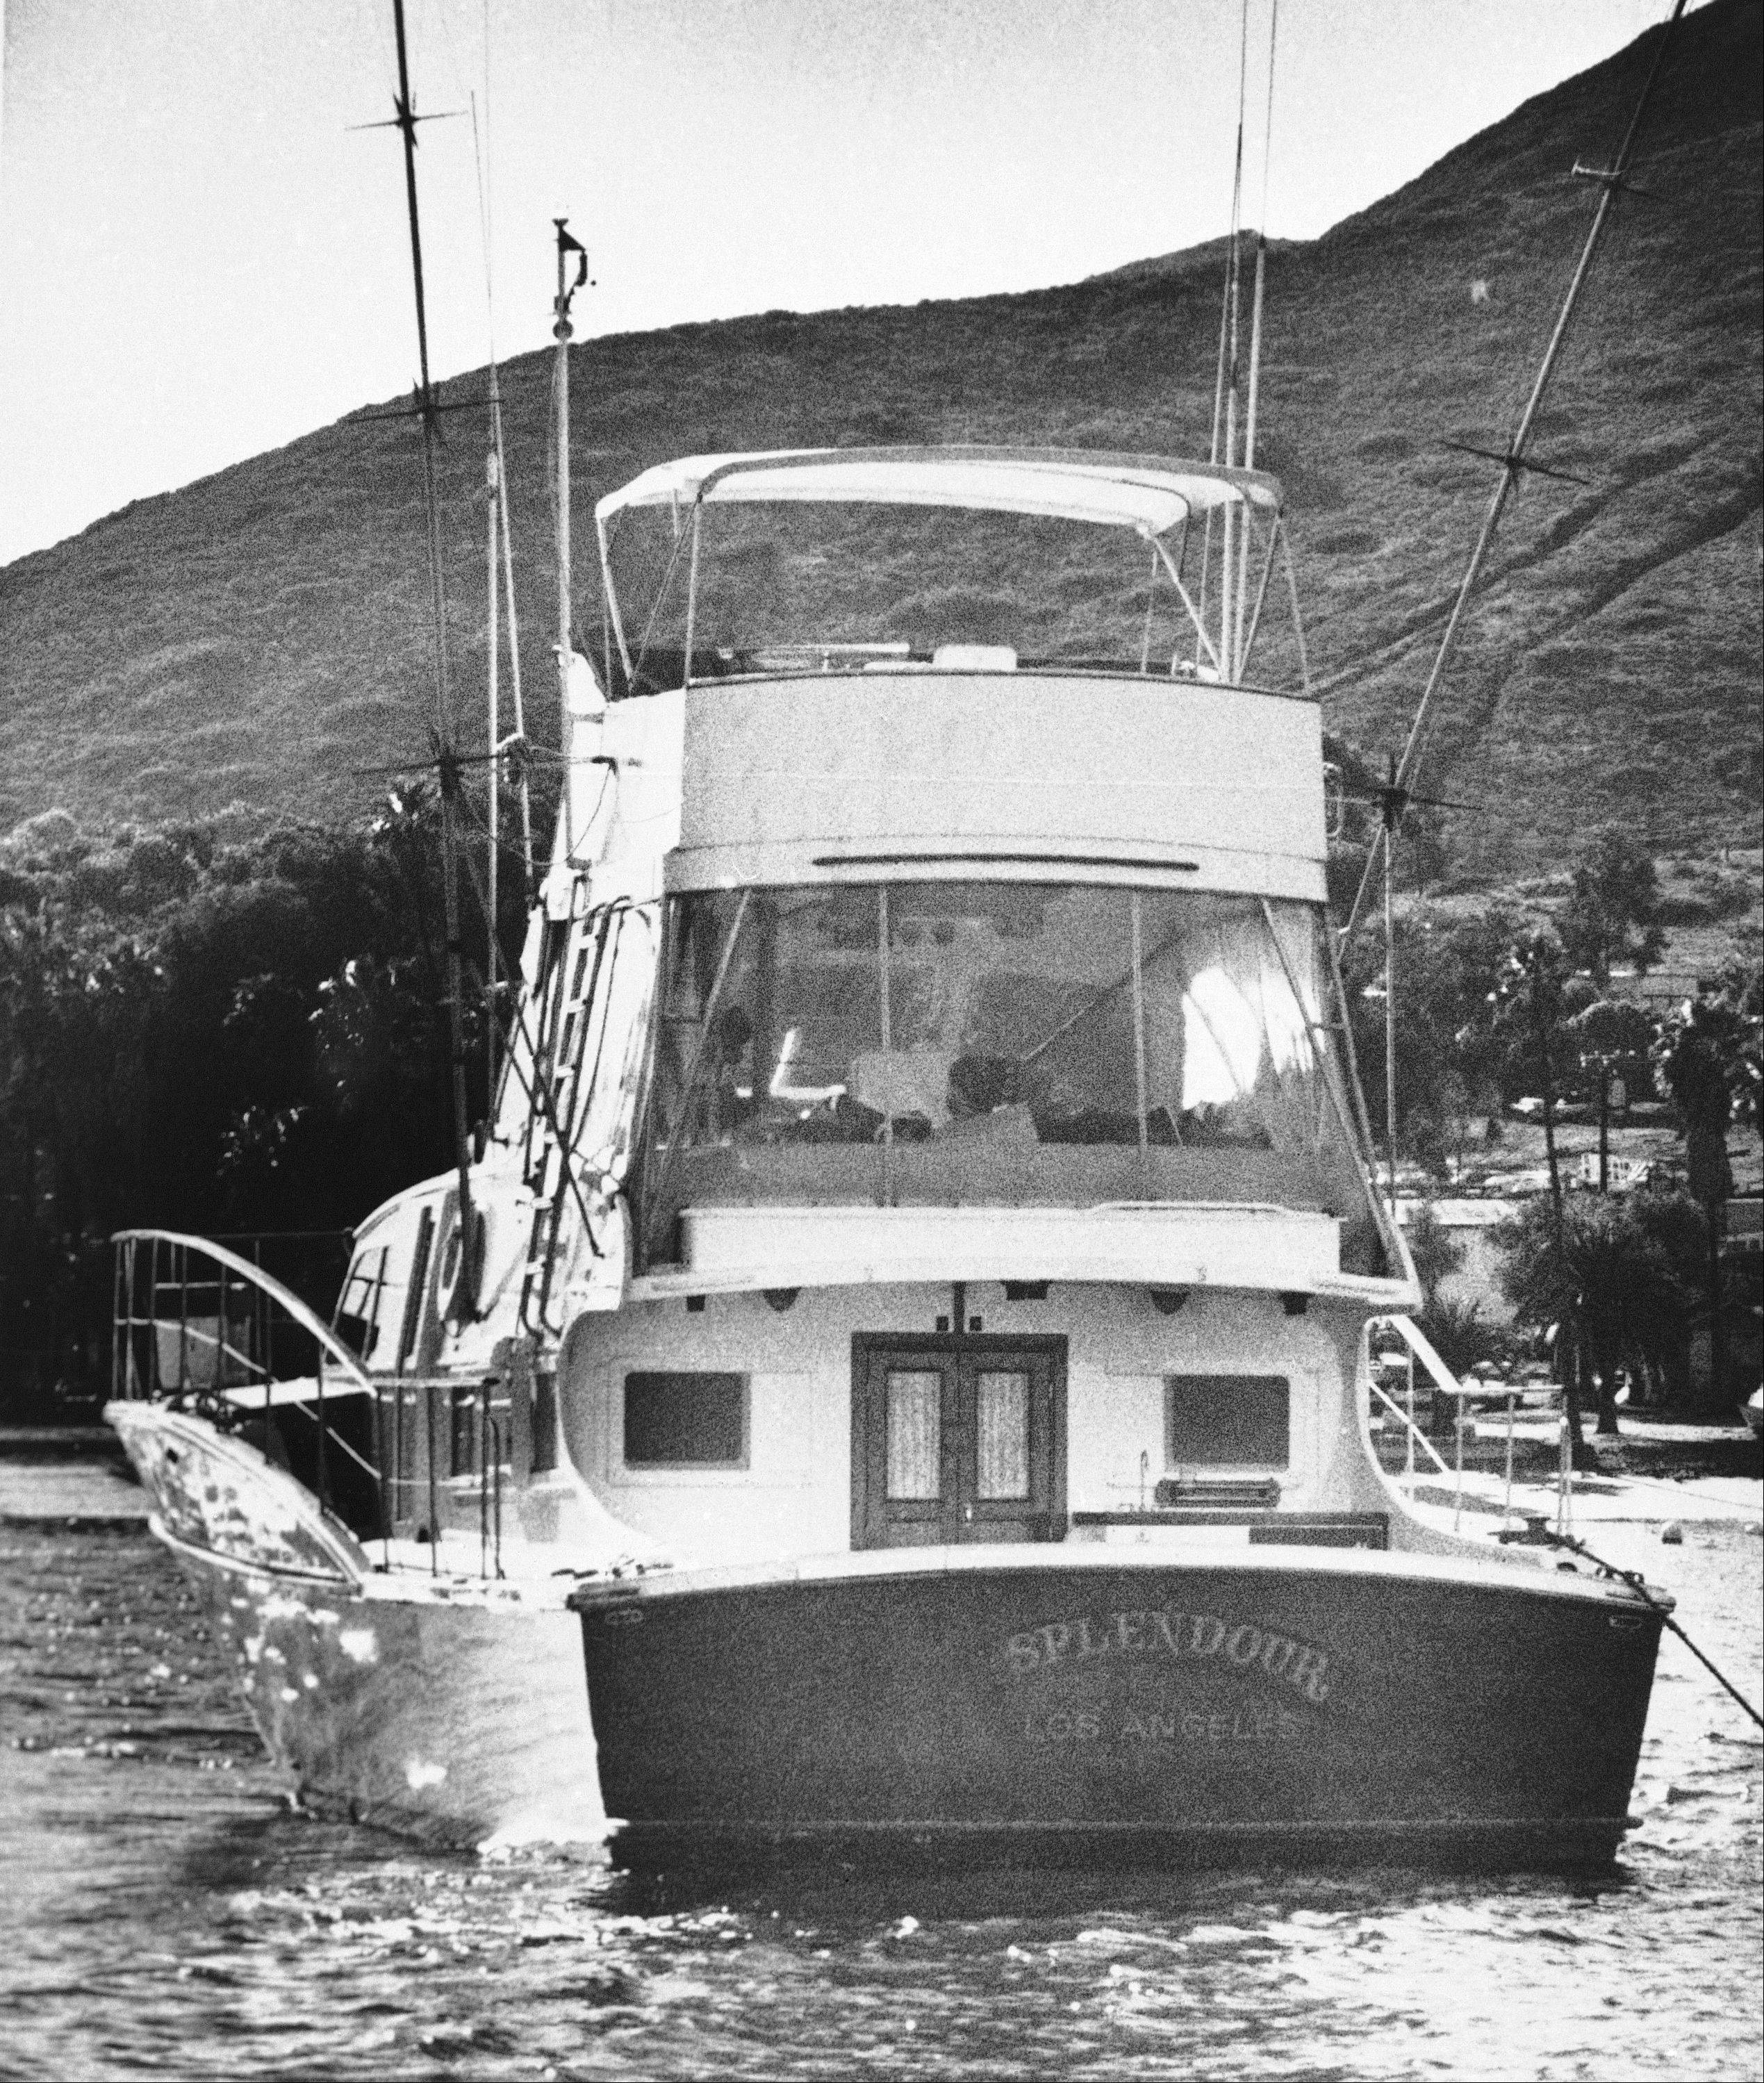 "The 55-foot yacht ""Splendour,"" belonging to actor Robert Wagner and his wife, actress Natalie Wood, sits in the waters off Catalina Island in Santa Catalina, Calif., near the site where Harbor Patrol personnel and lifeguards discovered the body of Wood, an apparent drowning victim, Nov. 29, 1981. Los Angeles sheriff's homicide detectives are taking another look at Wood's 1981 drowning death based on new information, officials announced Thursday, Nov. 17, 2011."